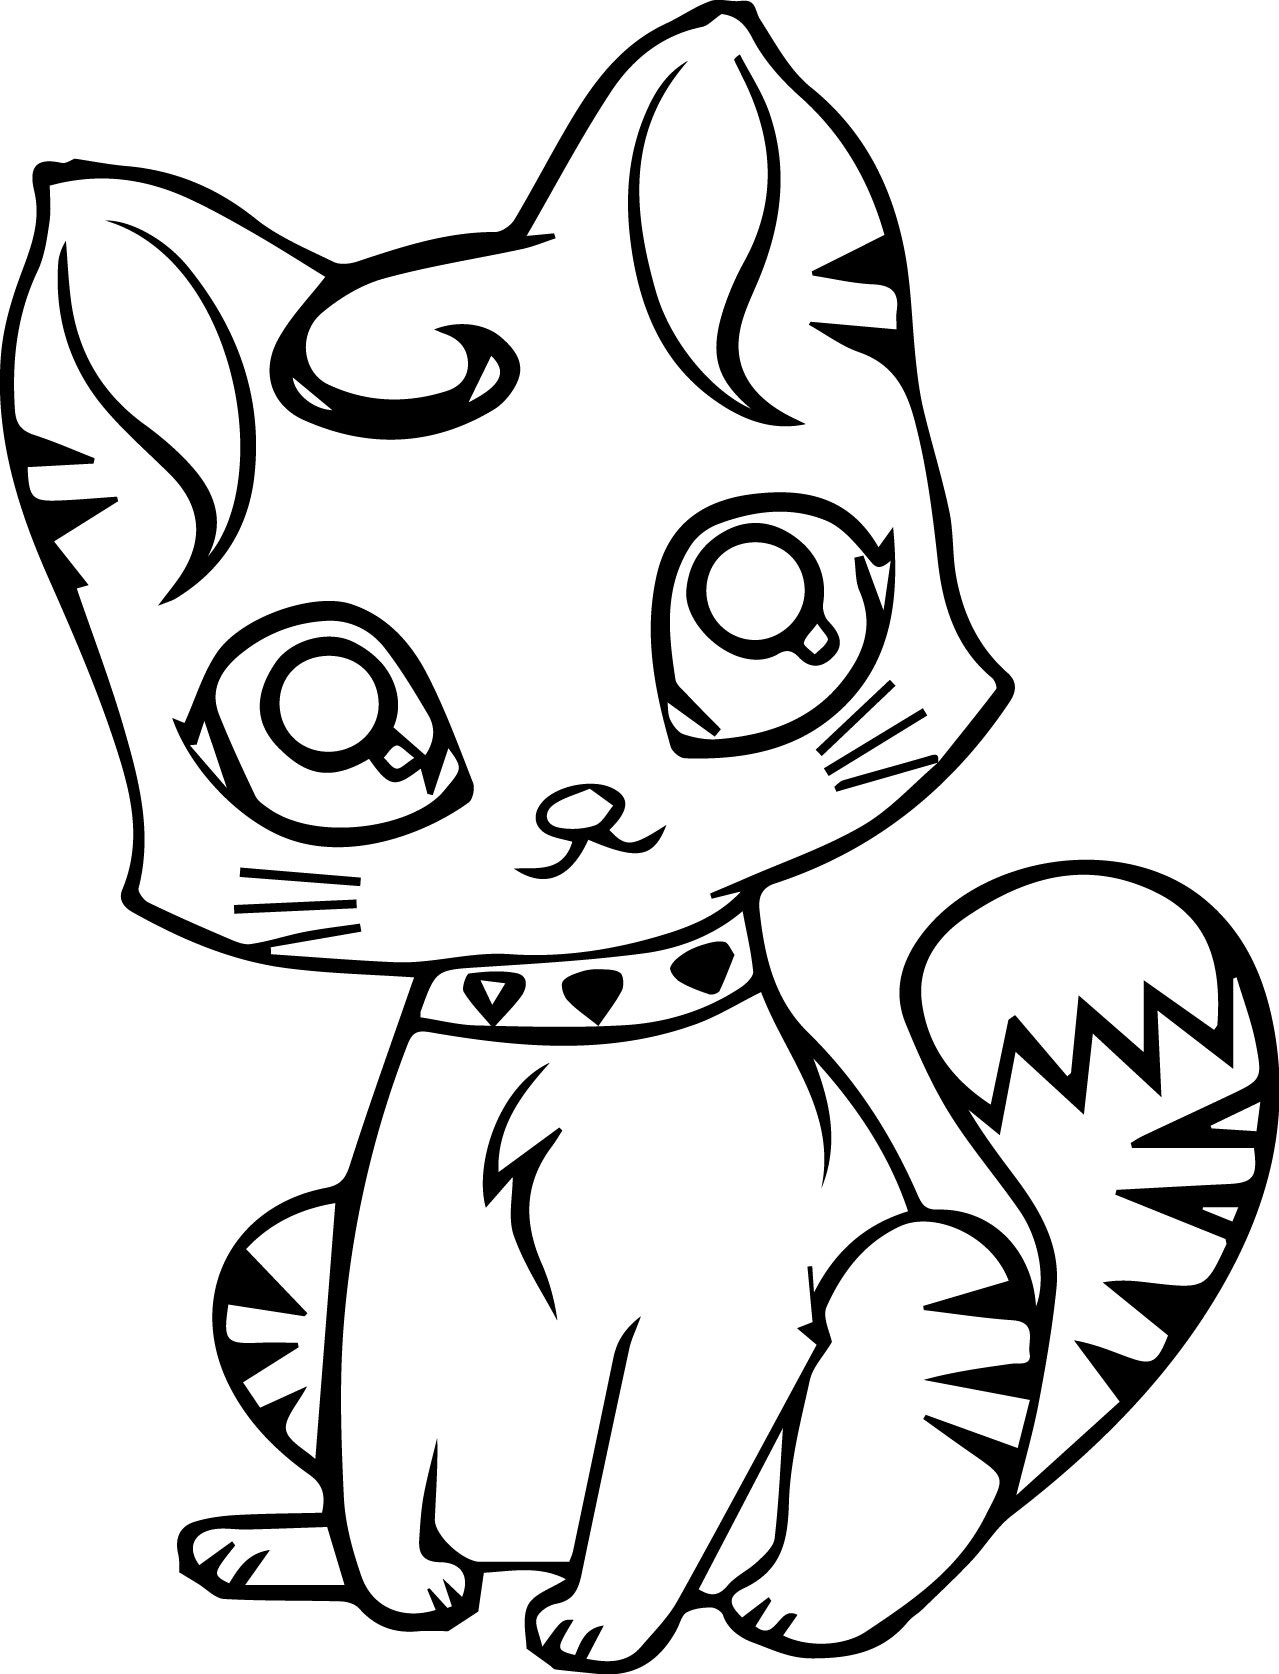 1279x1674 Cute Cat Coloring Pages